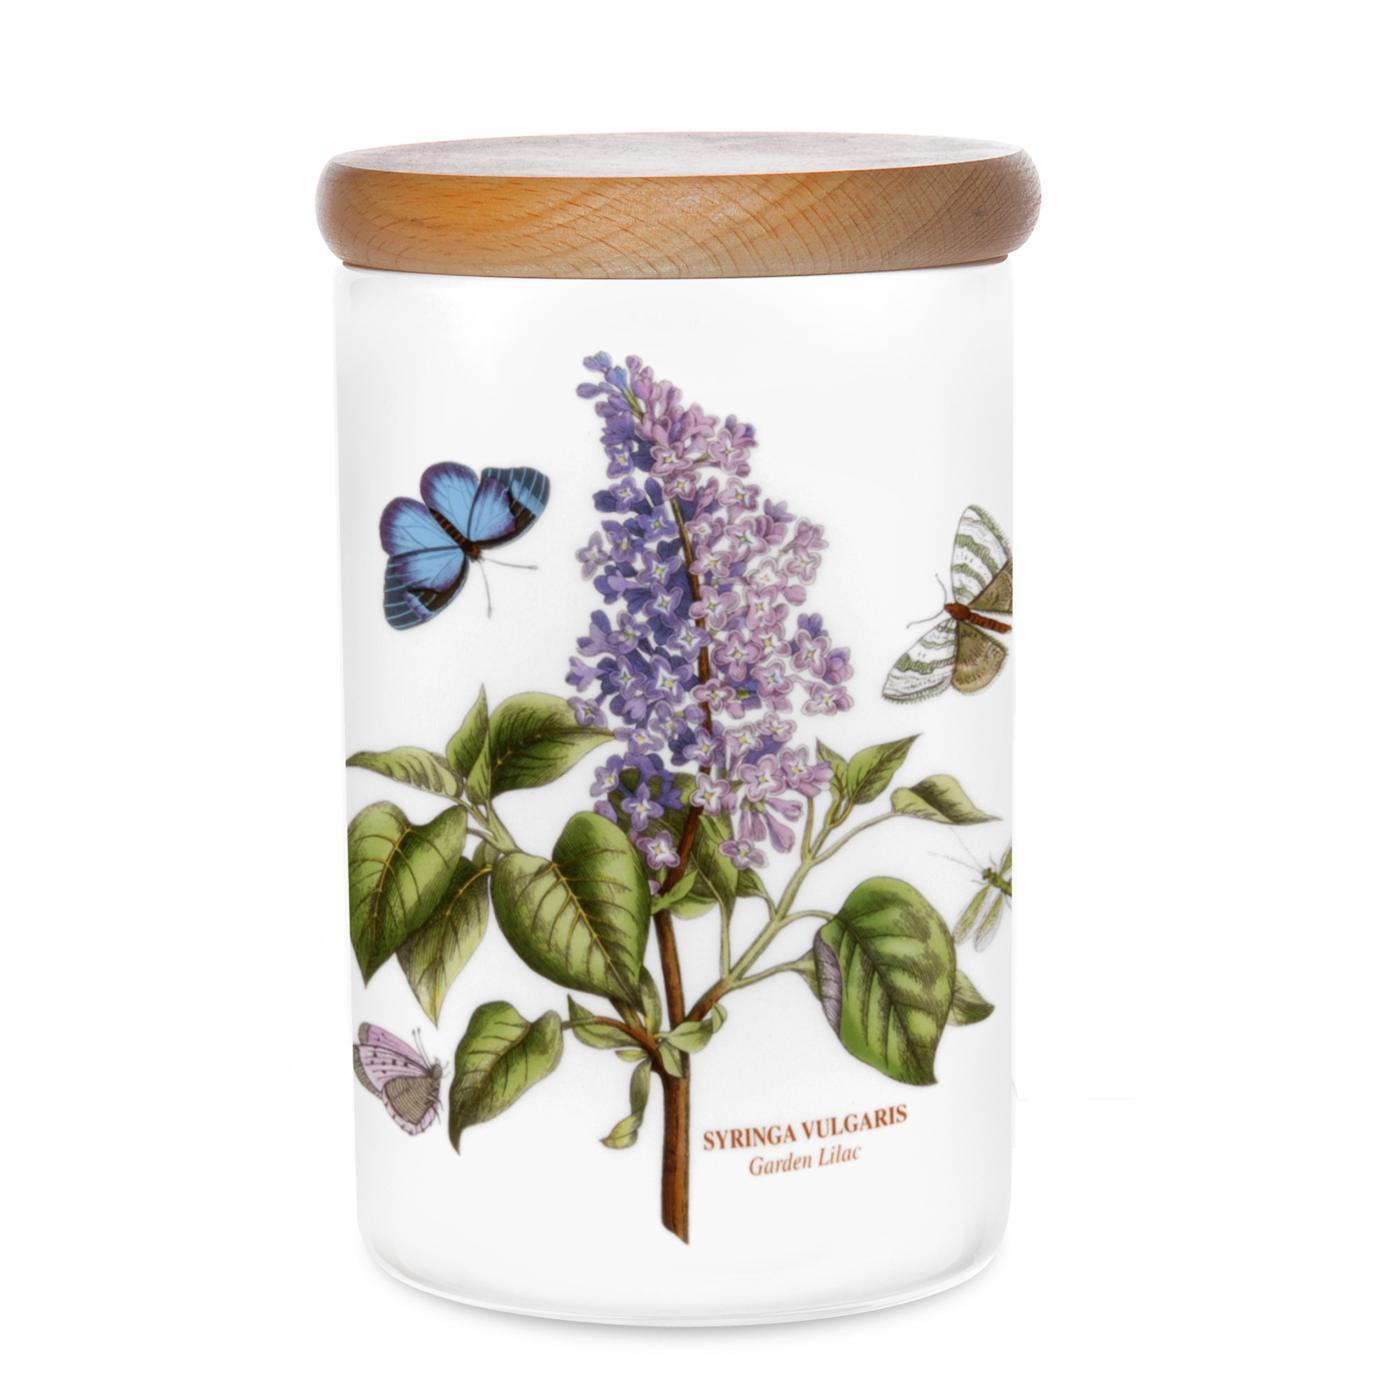 Botanic Garden 7 Inch Airtight Canister (Garden Lilac) image number 0